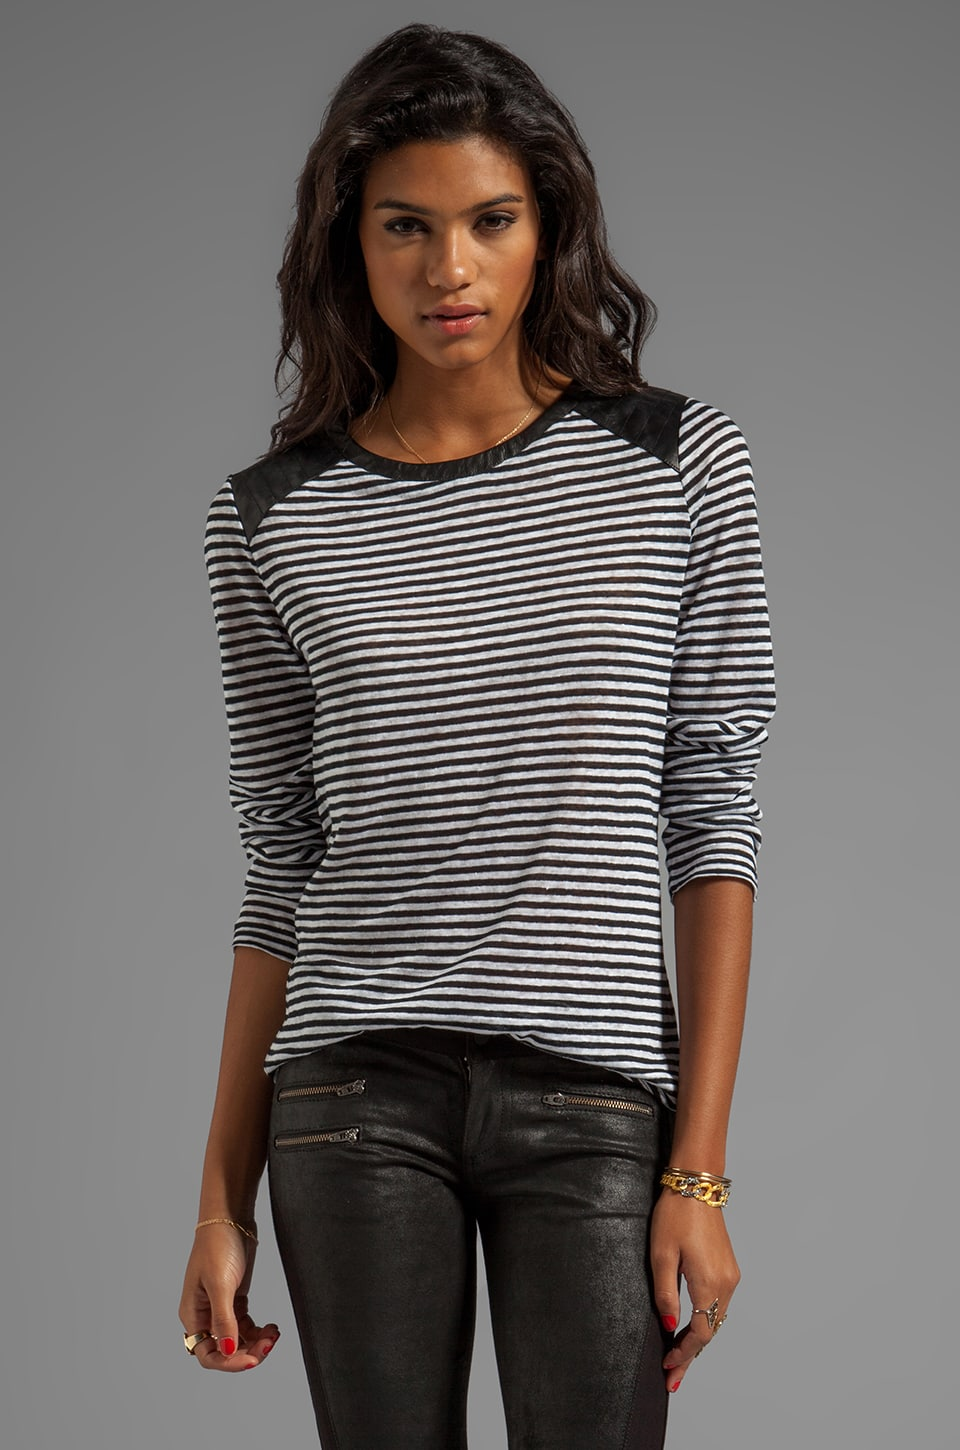 TOWNSEN Seattle Long Sleeve Top in Black/White Stripe